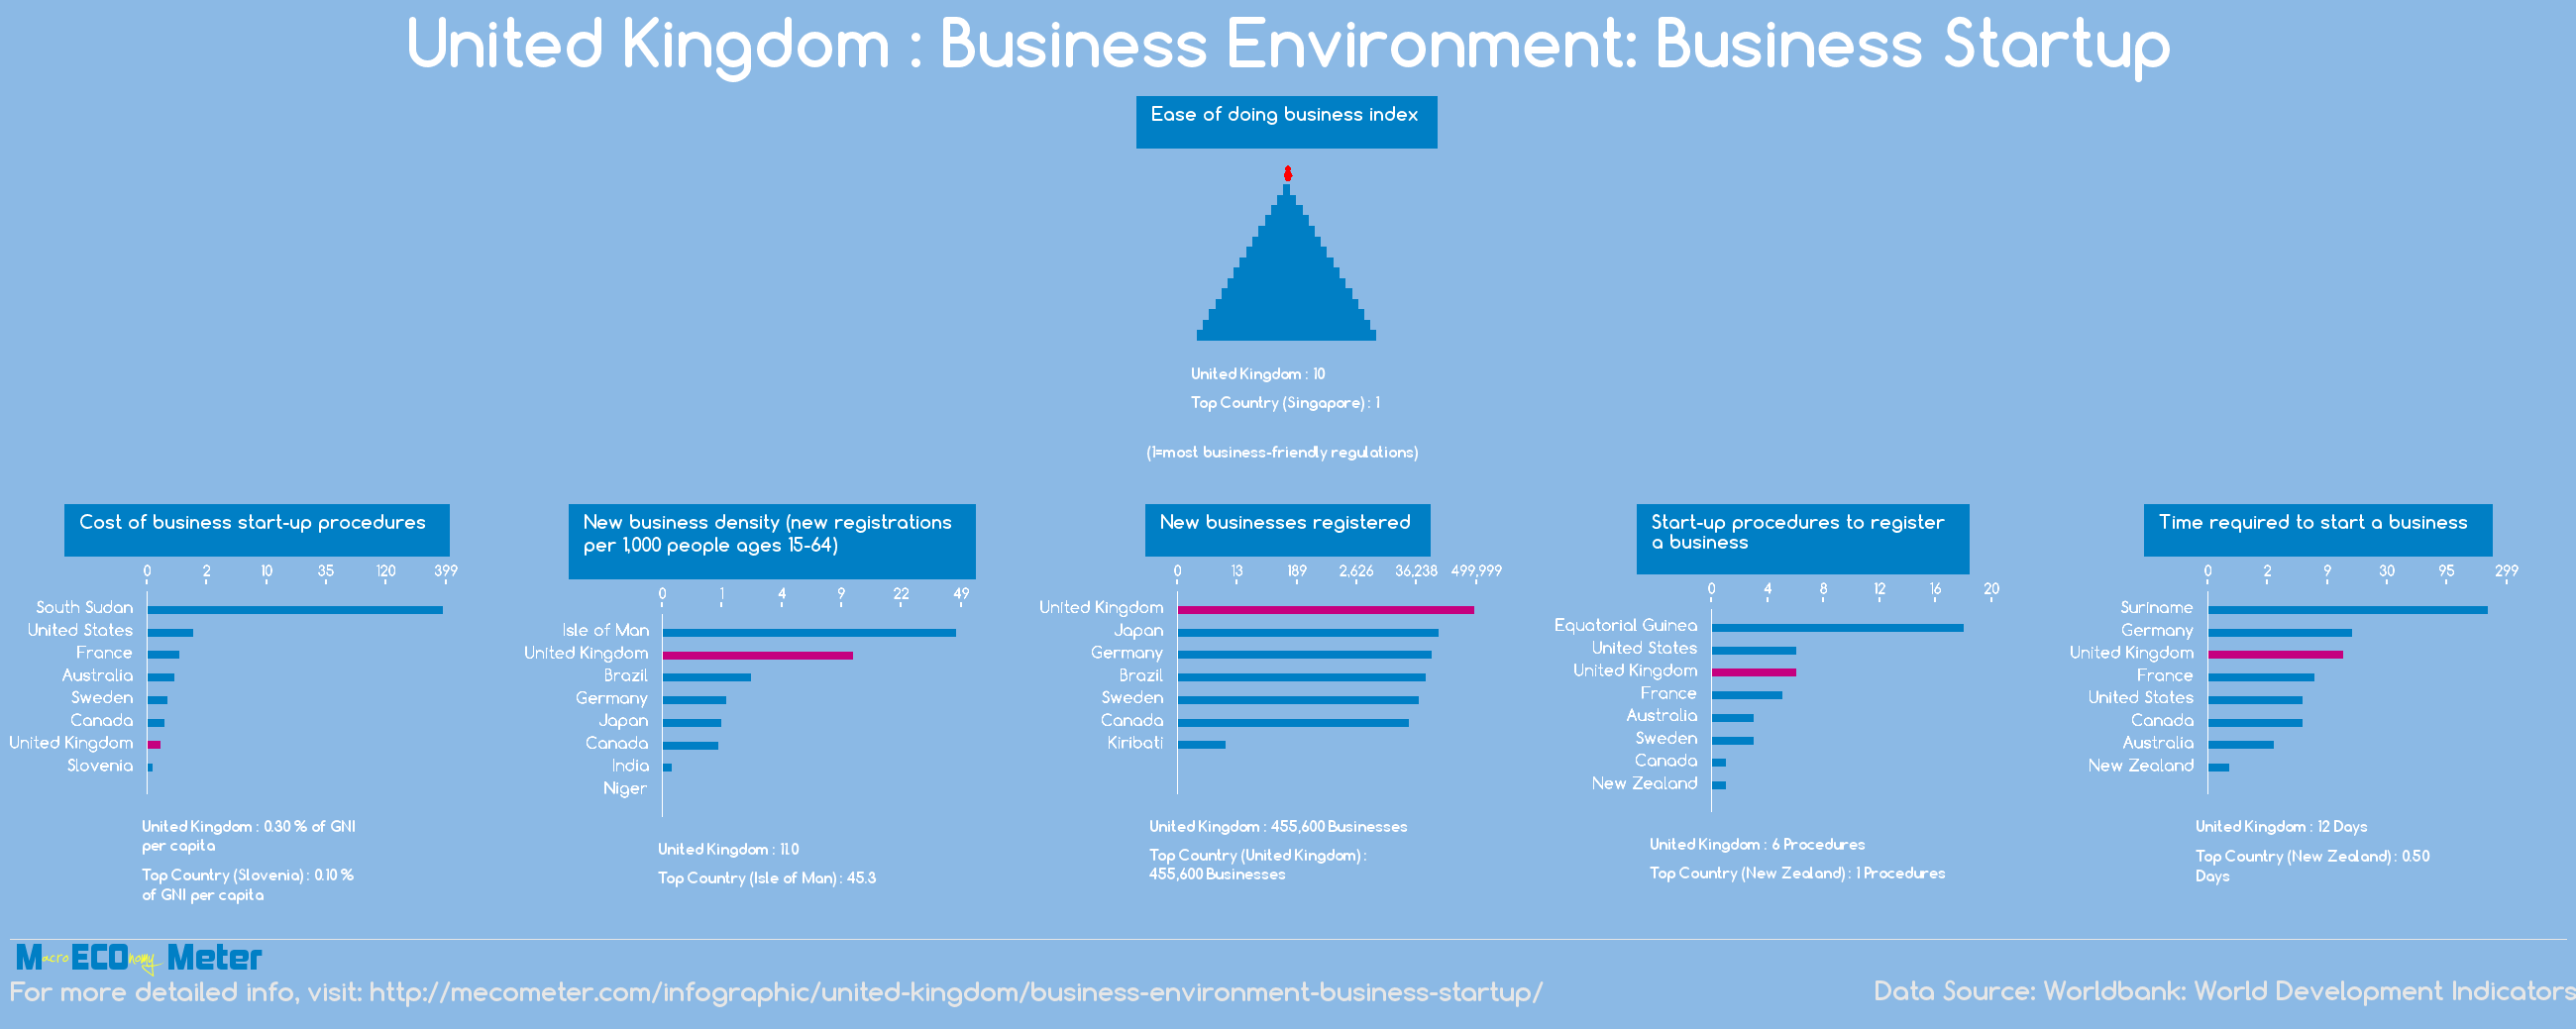 United Kingdom : Business Environment: Business Startup